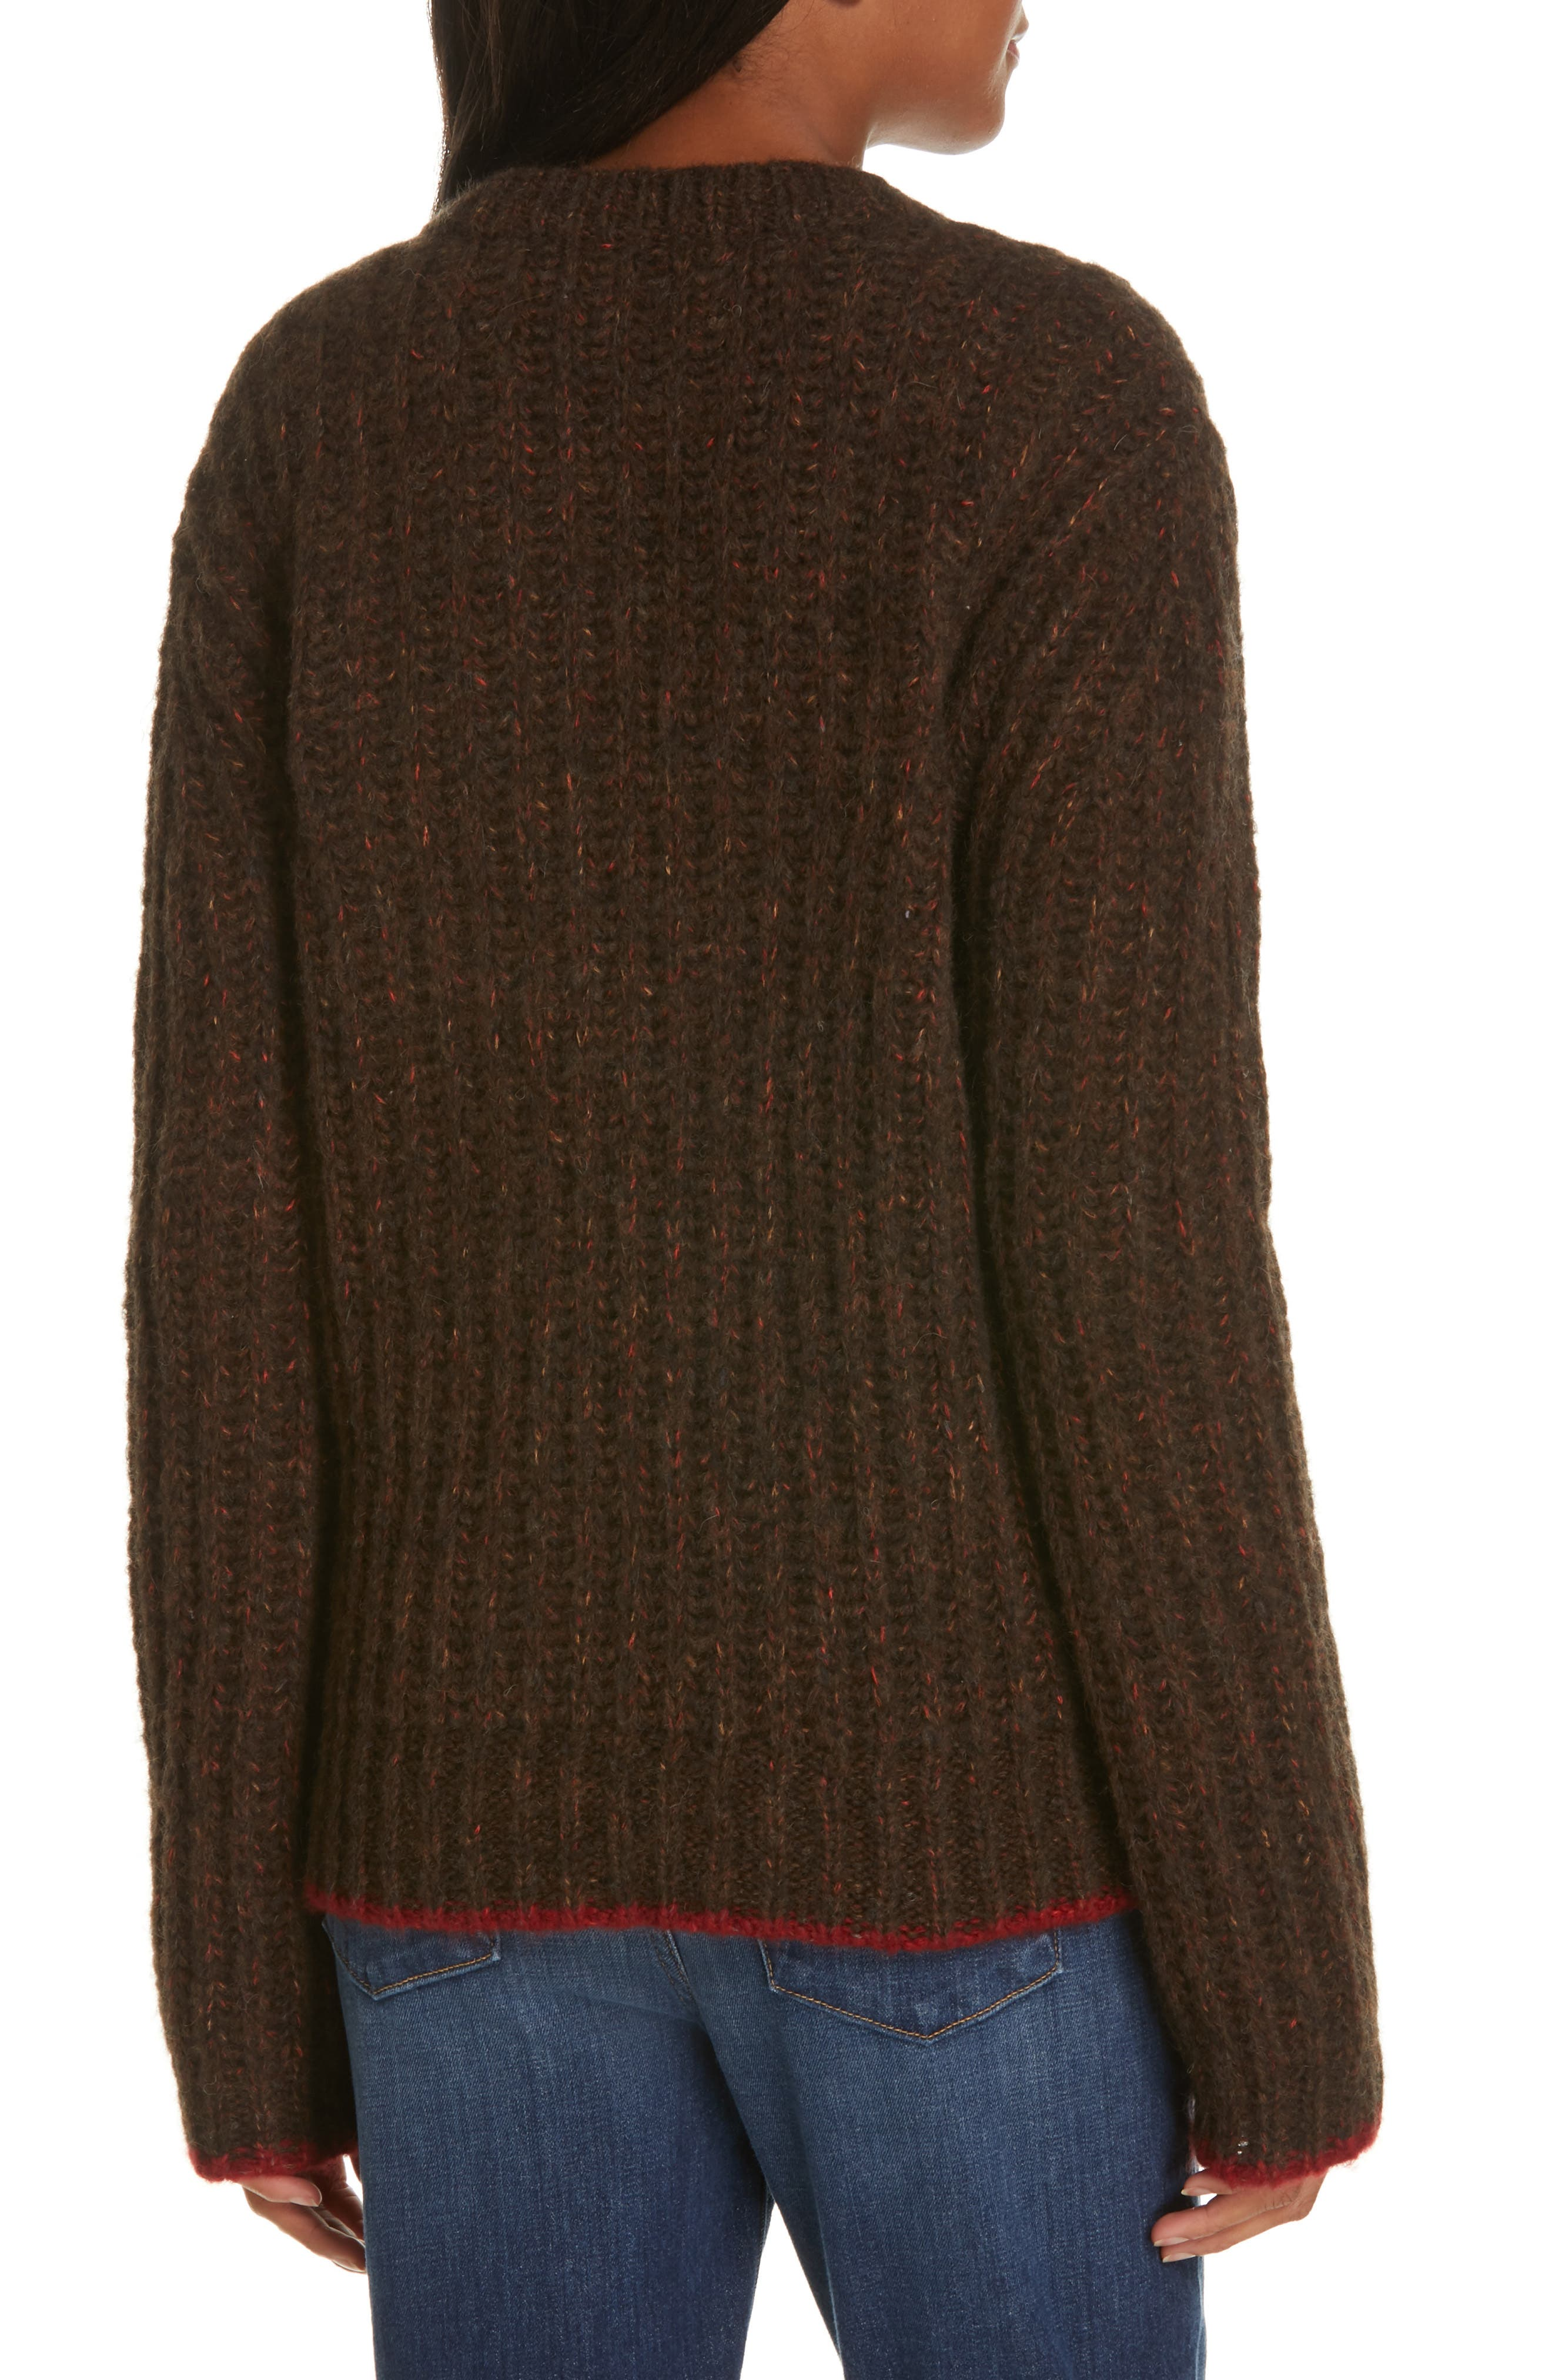 Oversize V-Neck Sweater,                             Alternate thumbnail 2, color,                             BROWN / RED